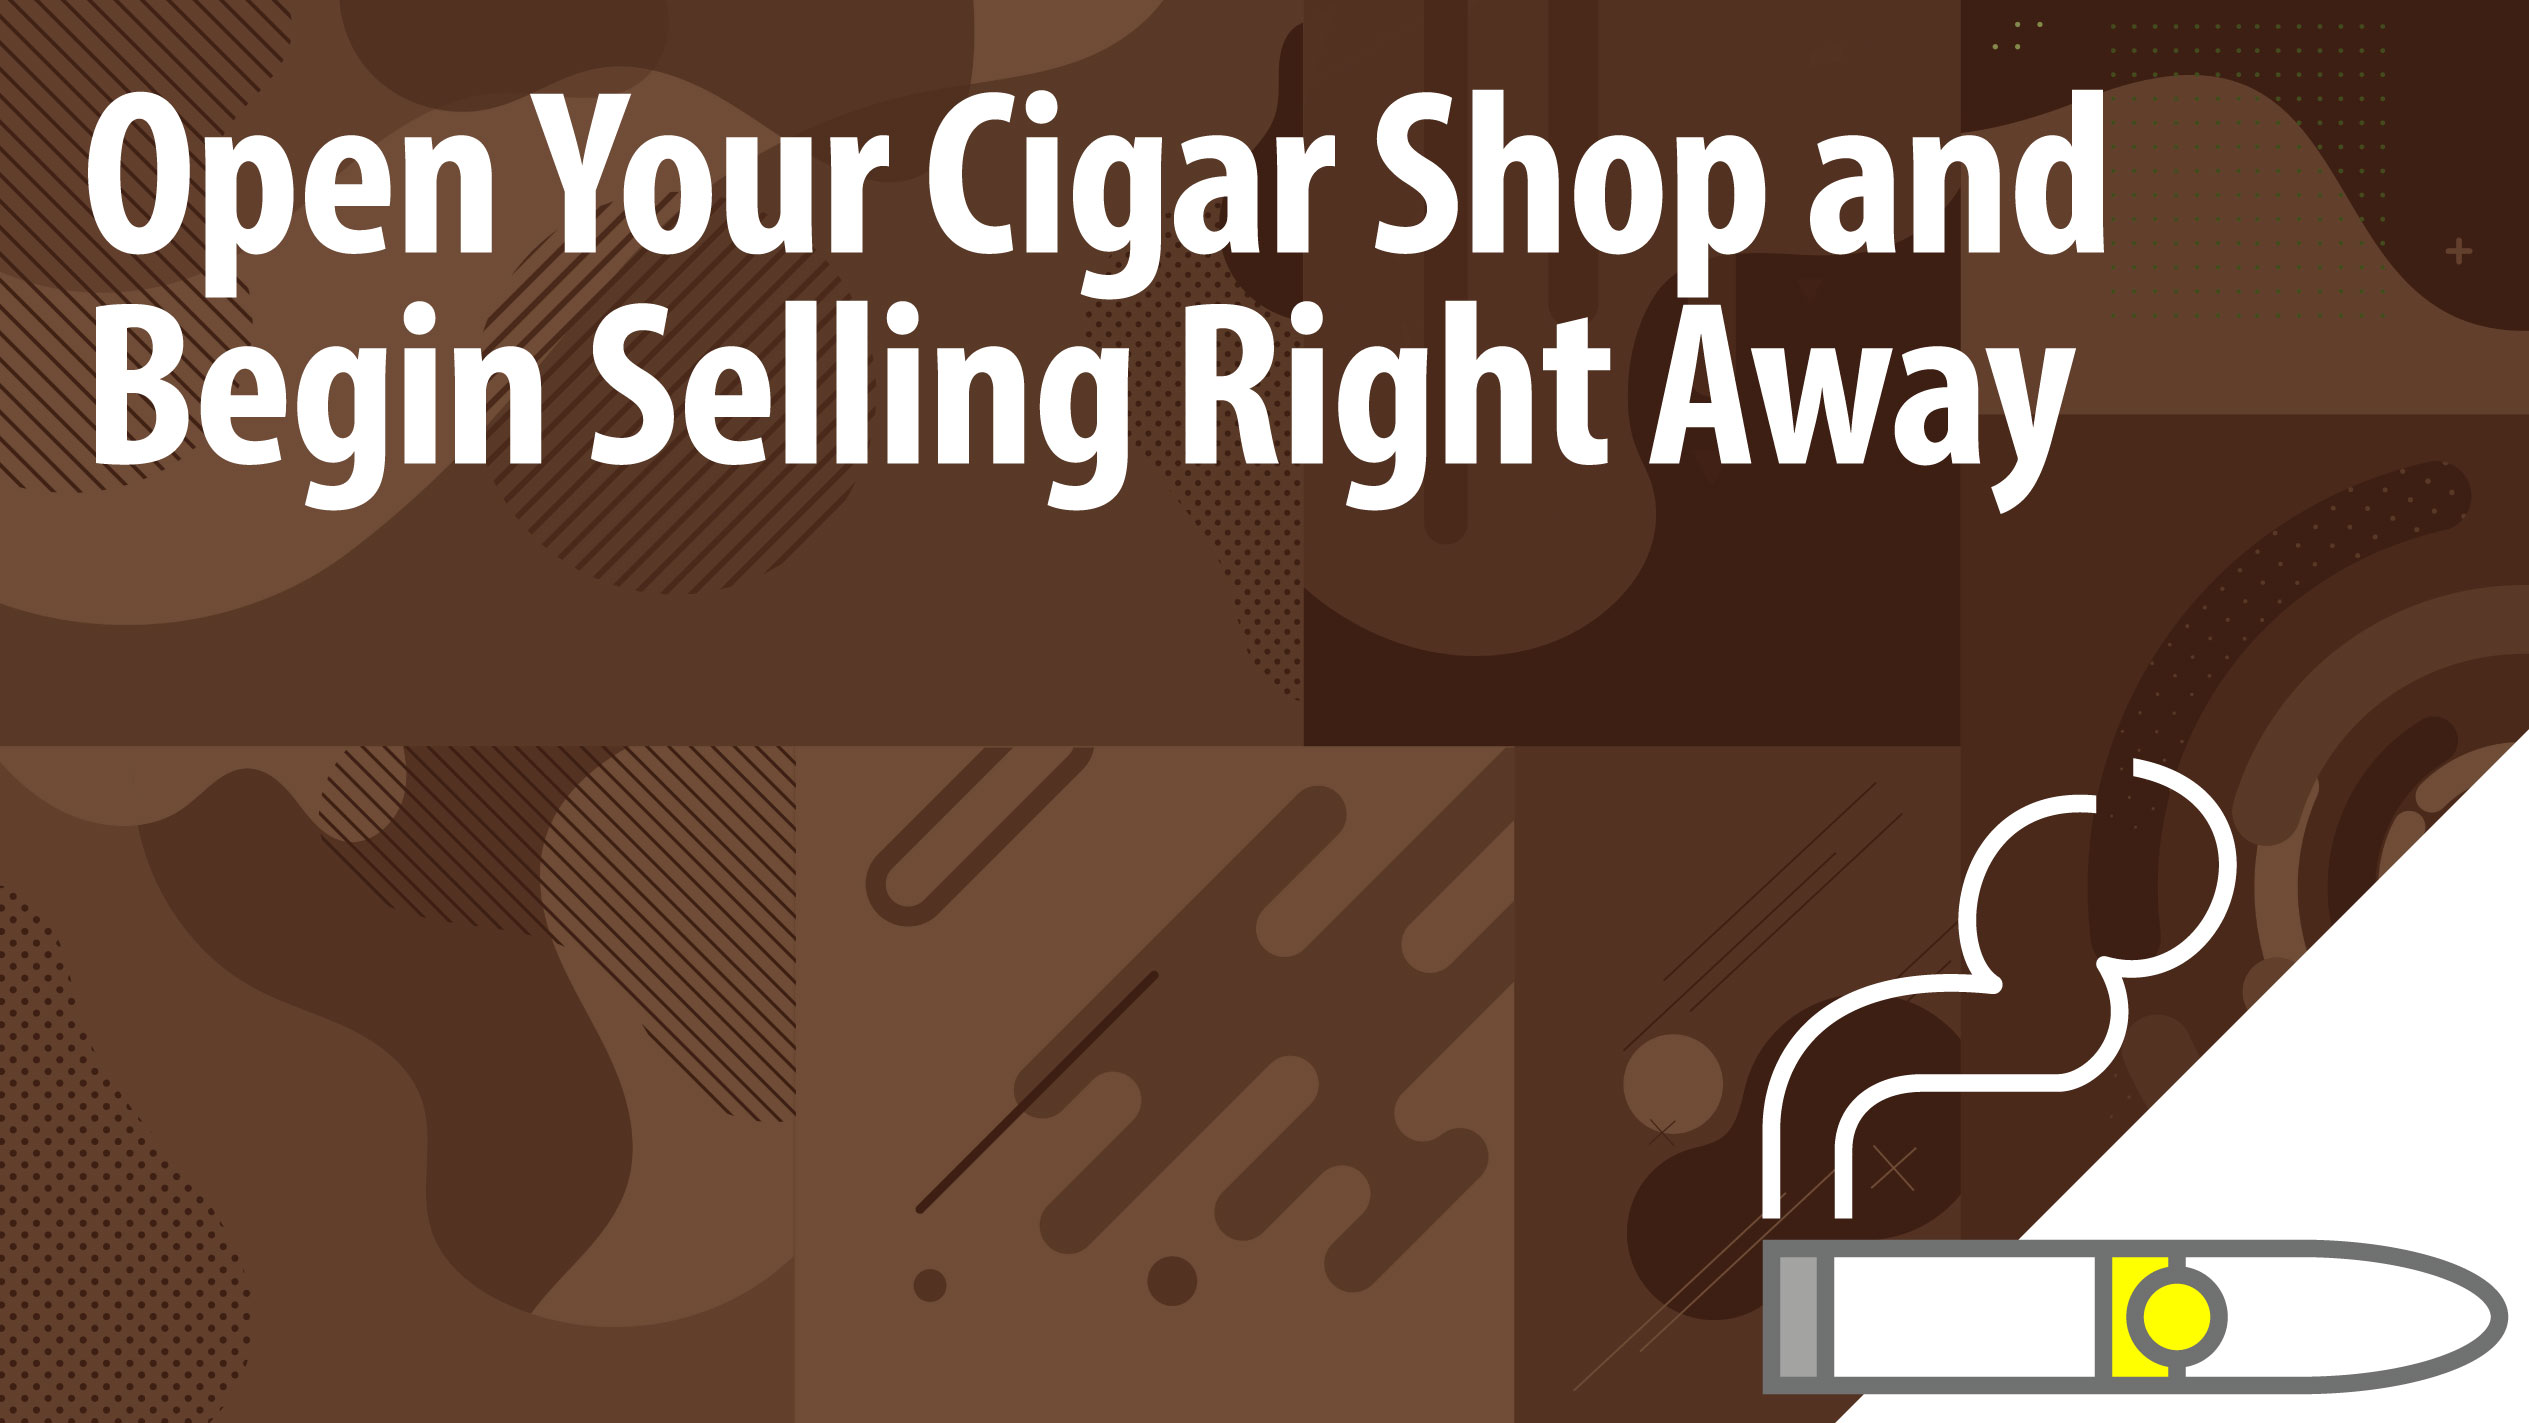 Open Your Cigar Shop and Begin Selling Right Away